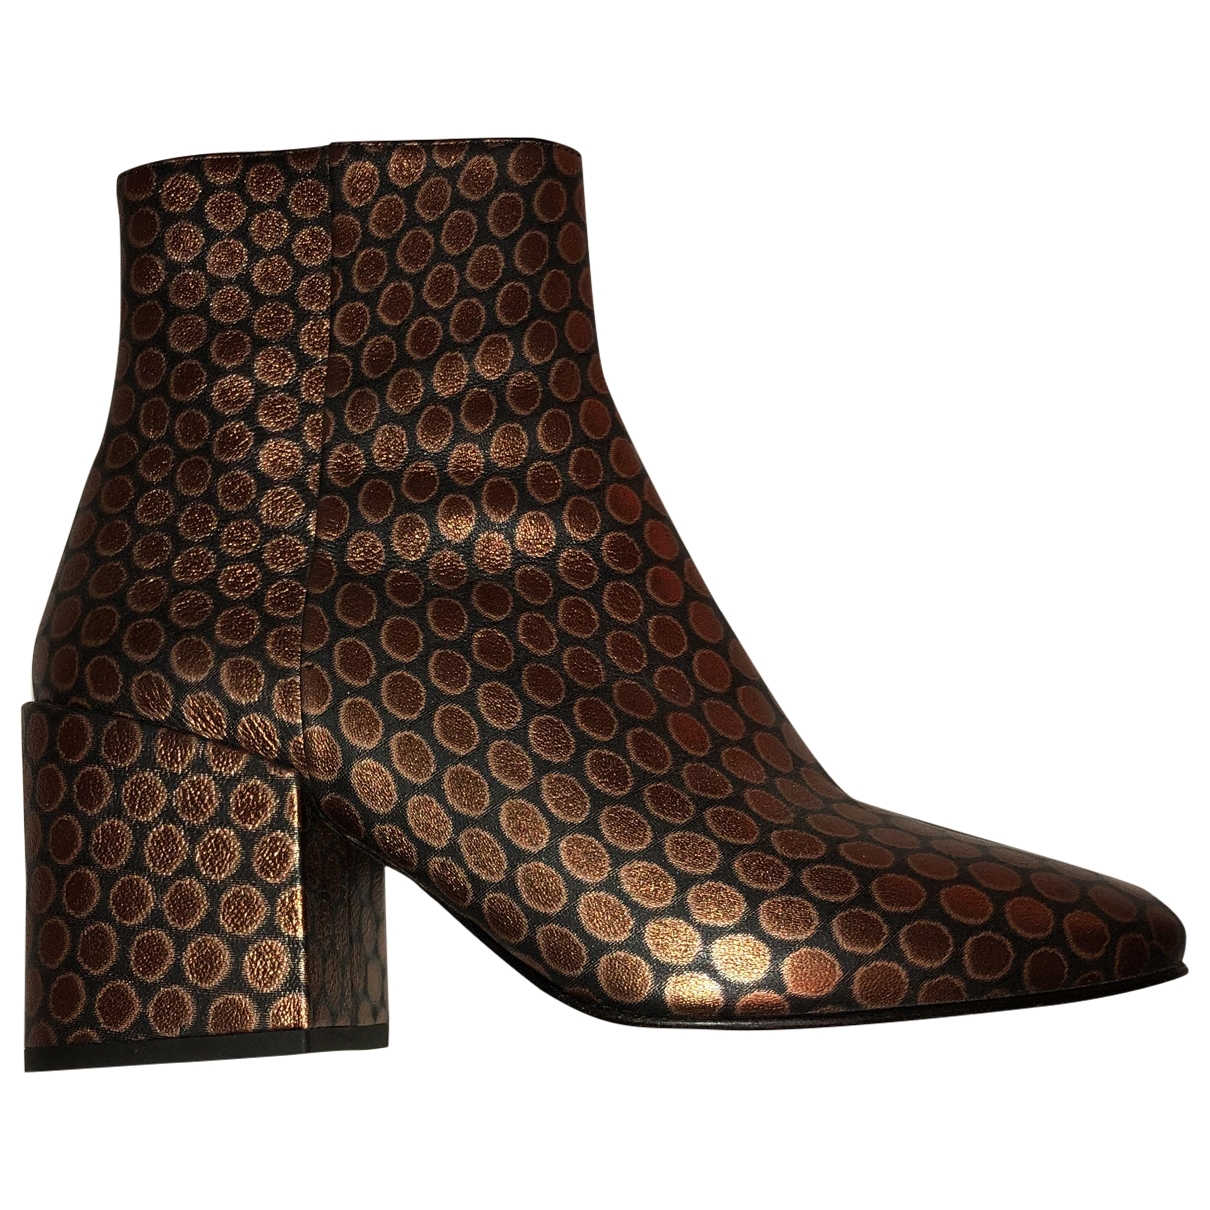 Dries Van Noten \N Metallic Leather Ankle boots for Women 38 EU